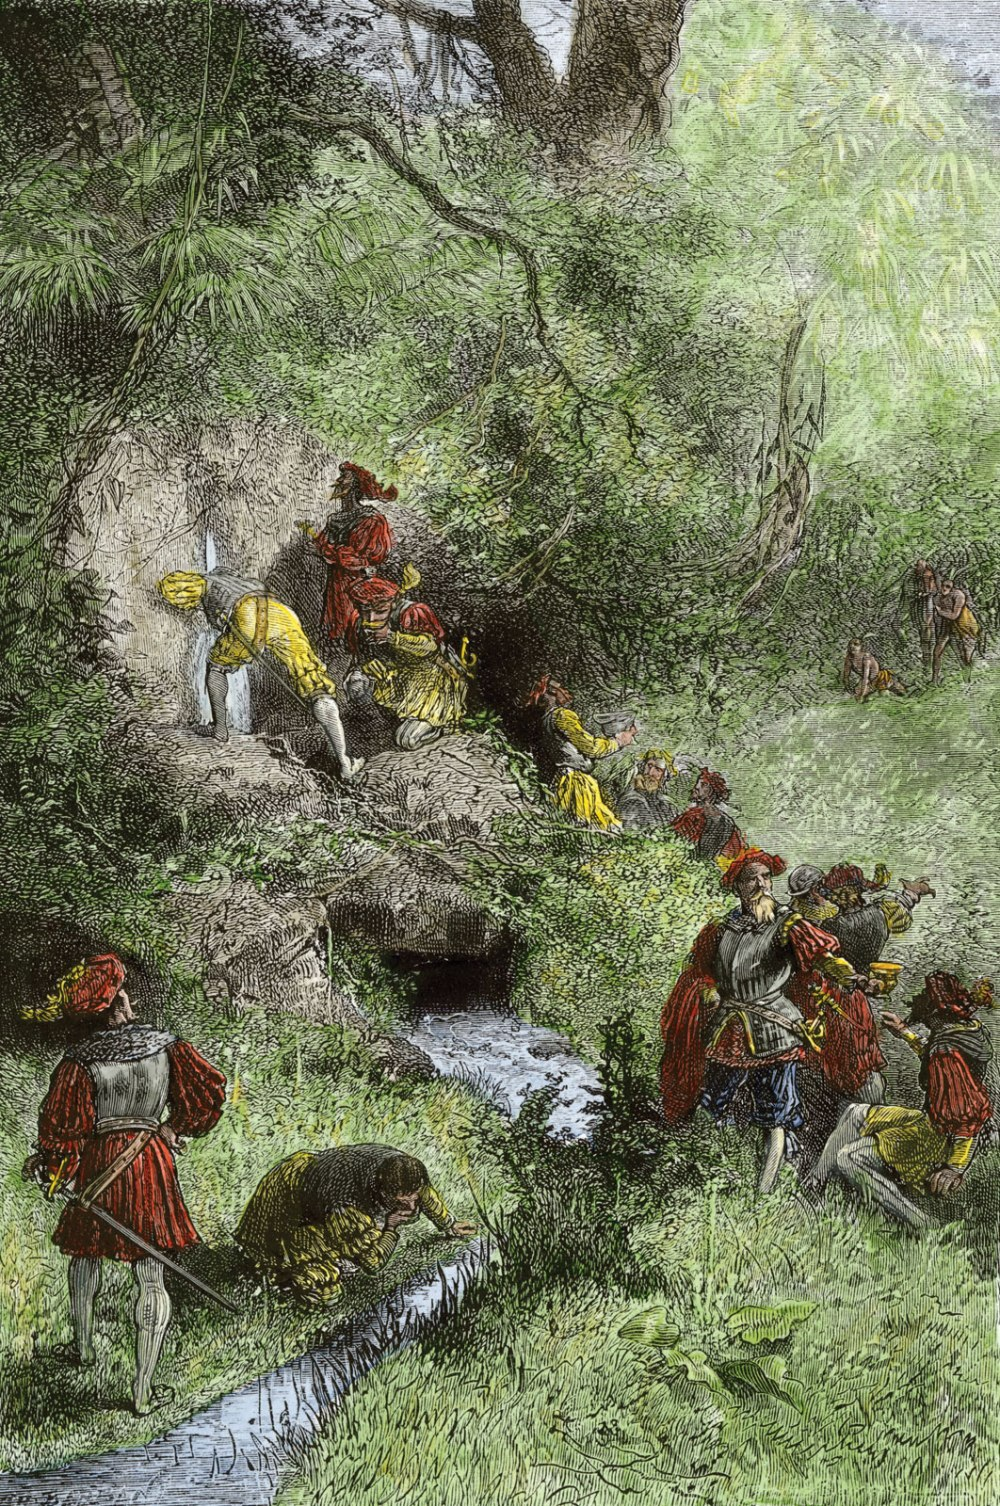 Juan Ponce de León and their explorers in Florida looking for the Fountain of youth, according to a drawing of the nineteenth century German._wikipedia